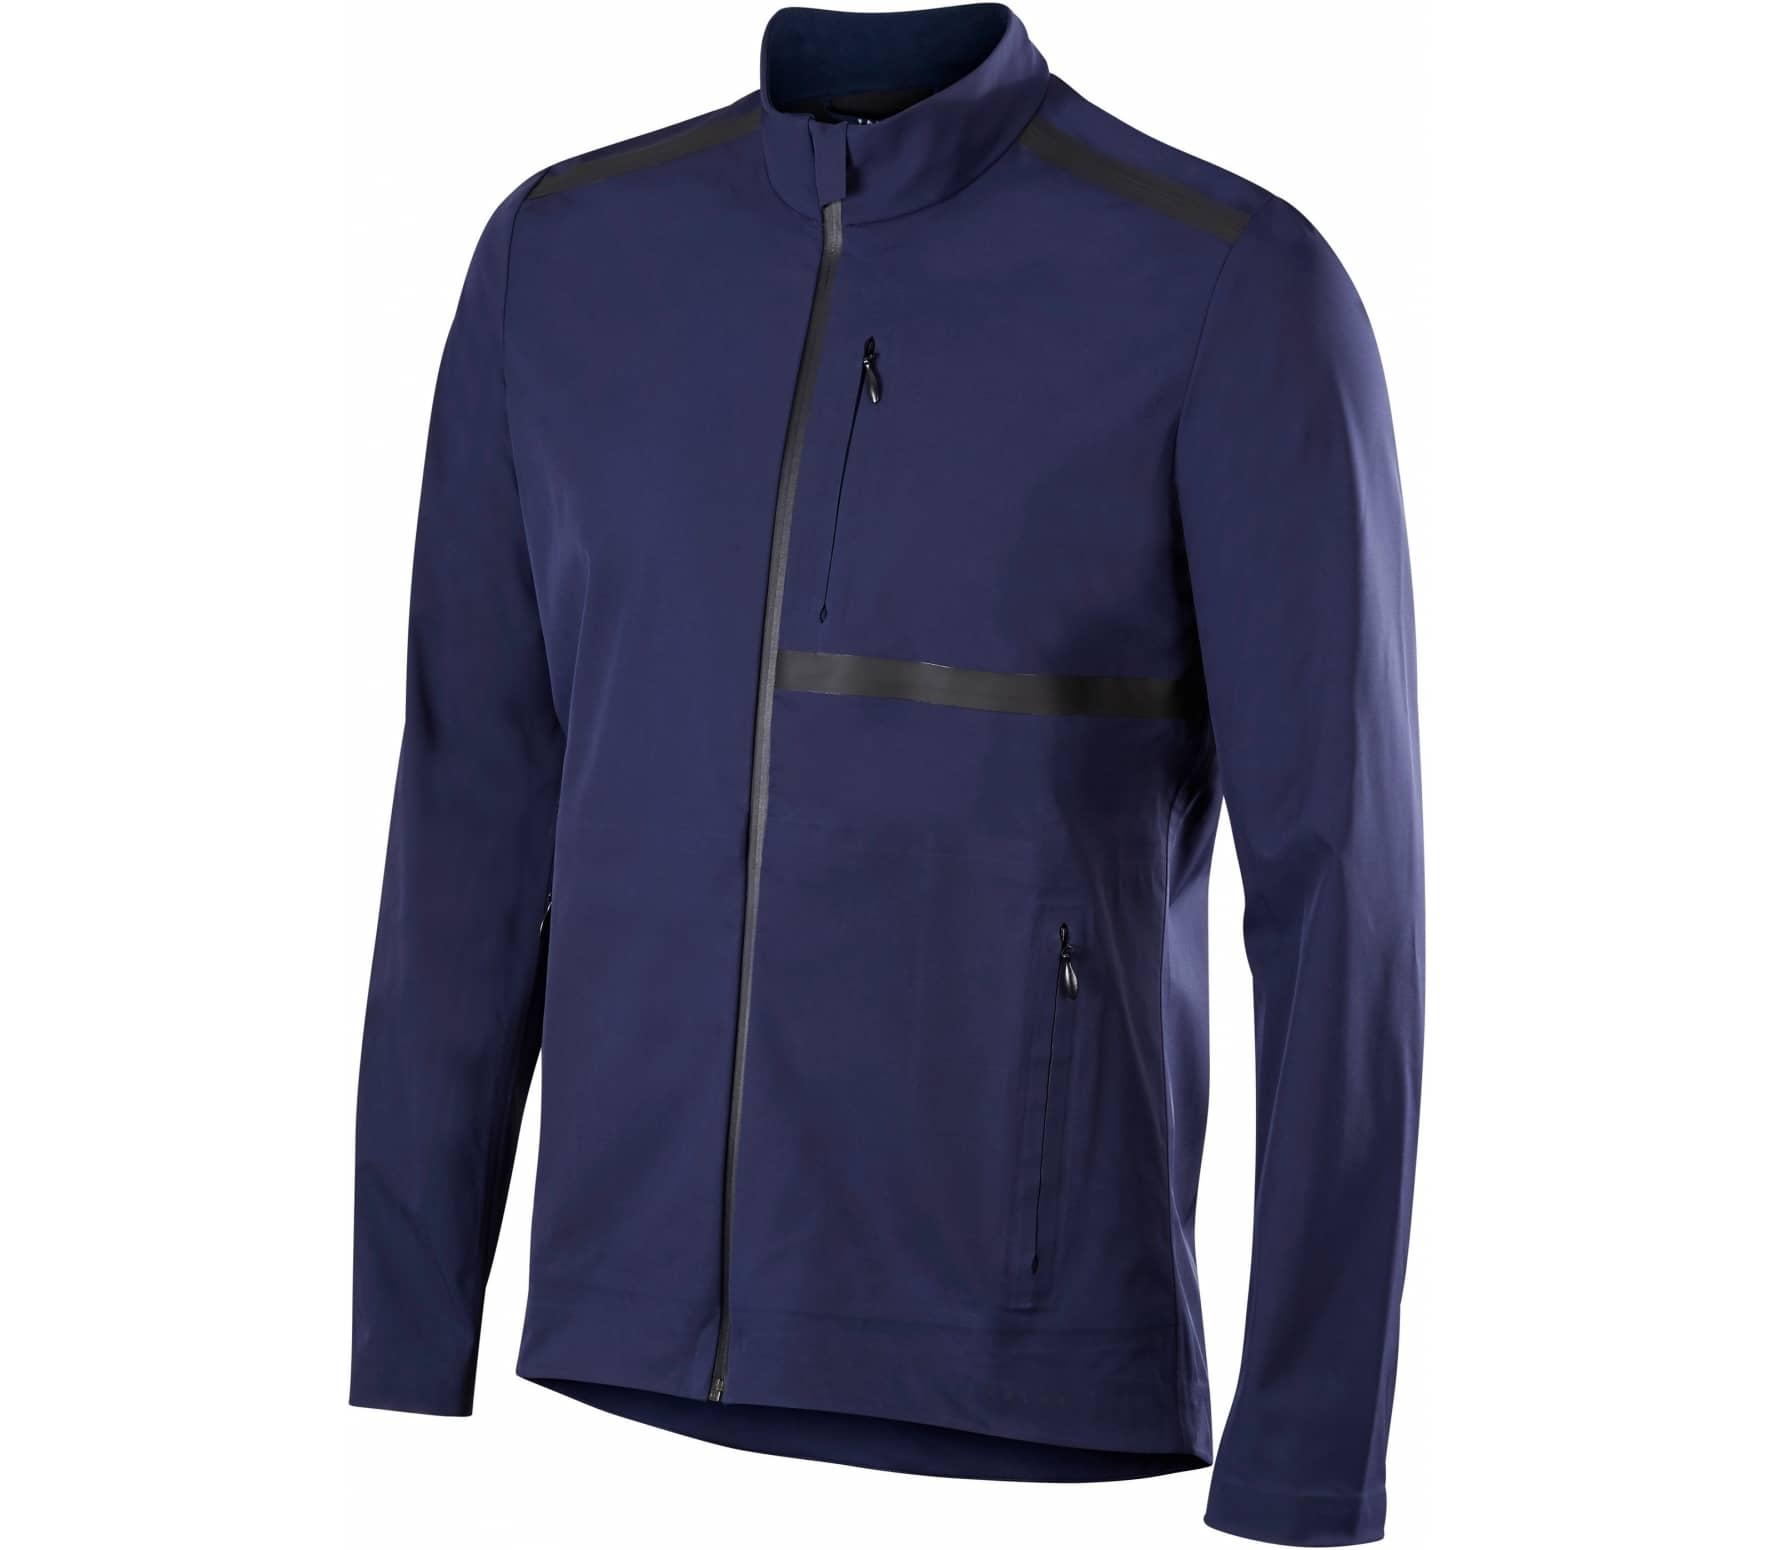 Falke - Softshell men's running jacket (dark blue) - M thumbnail